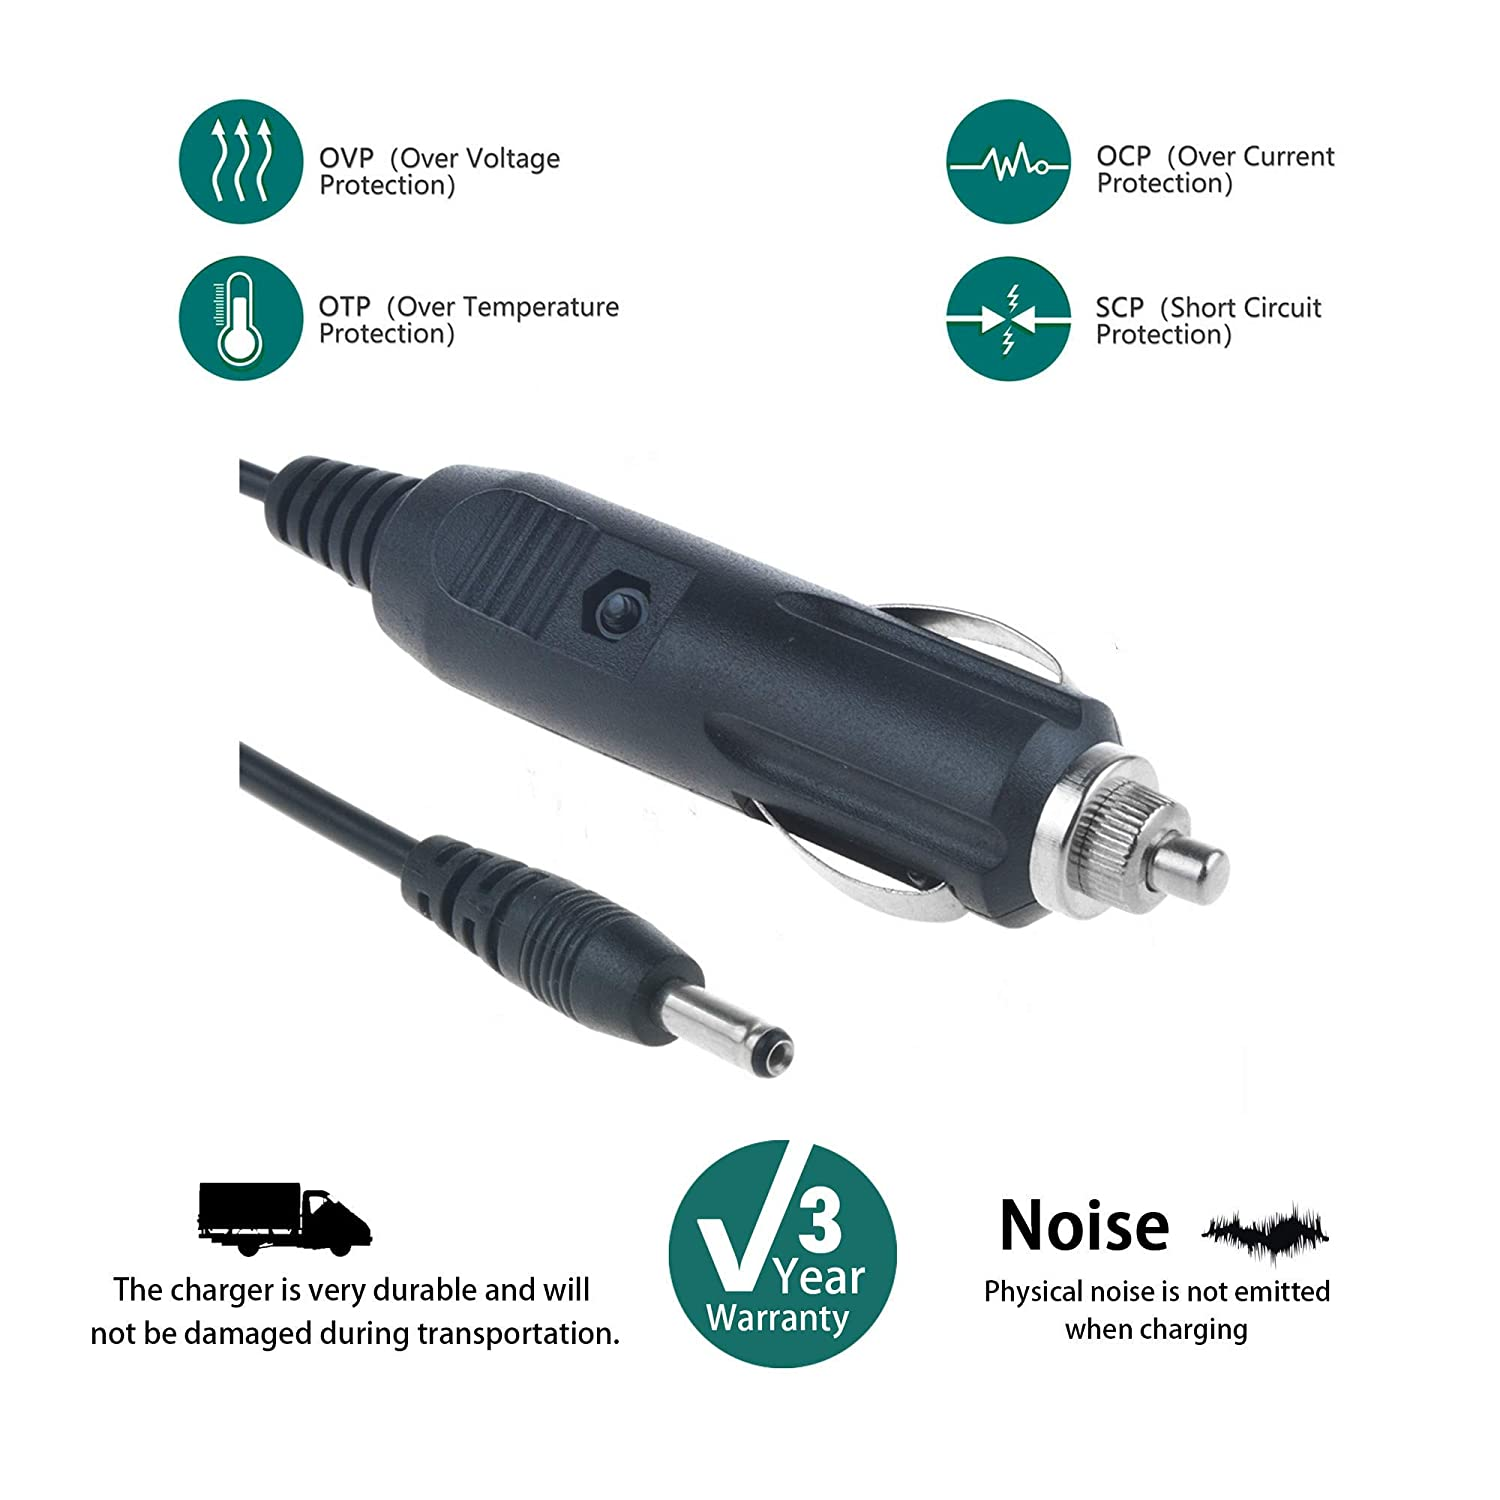 Speaker SLLEA DC Adapter Car Power Supply Charger Cord Compatible with  Echo DOT 3rd gen